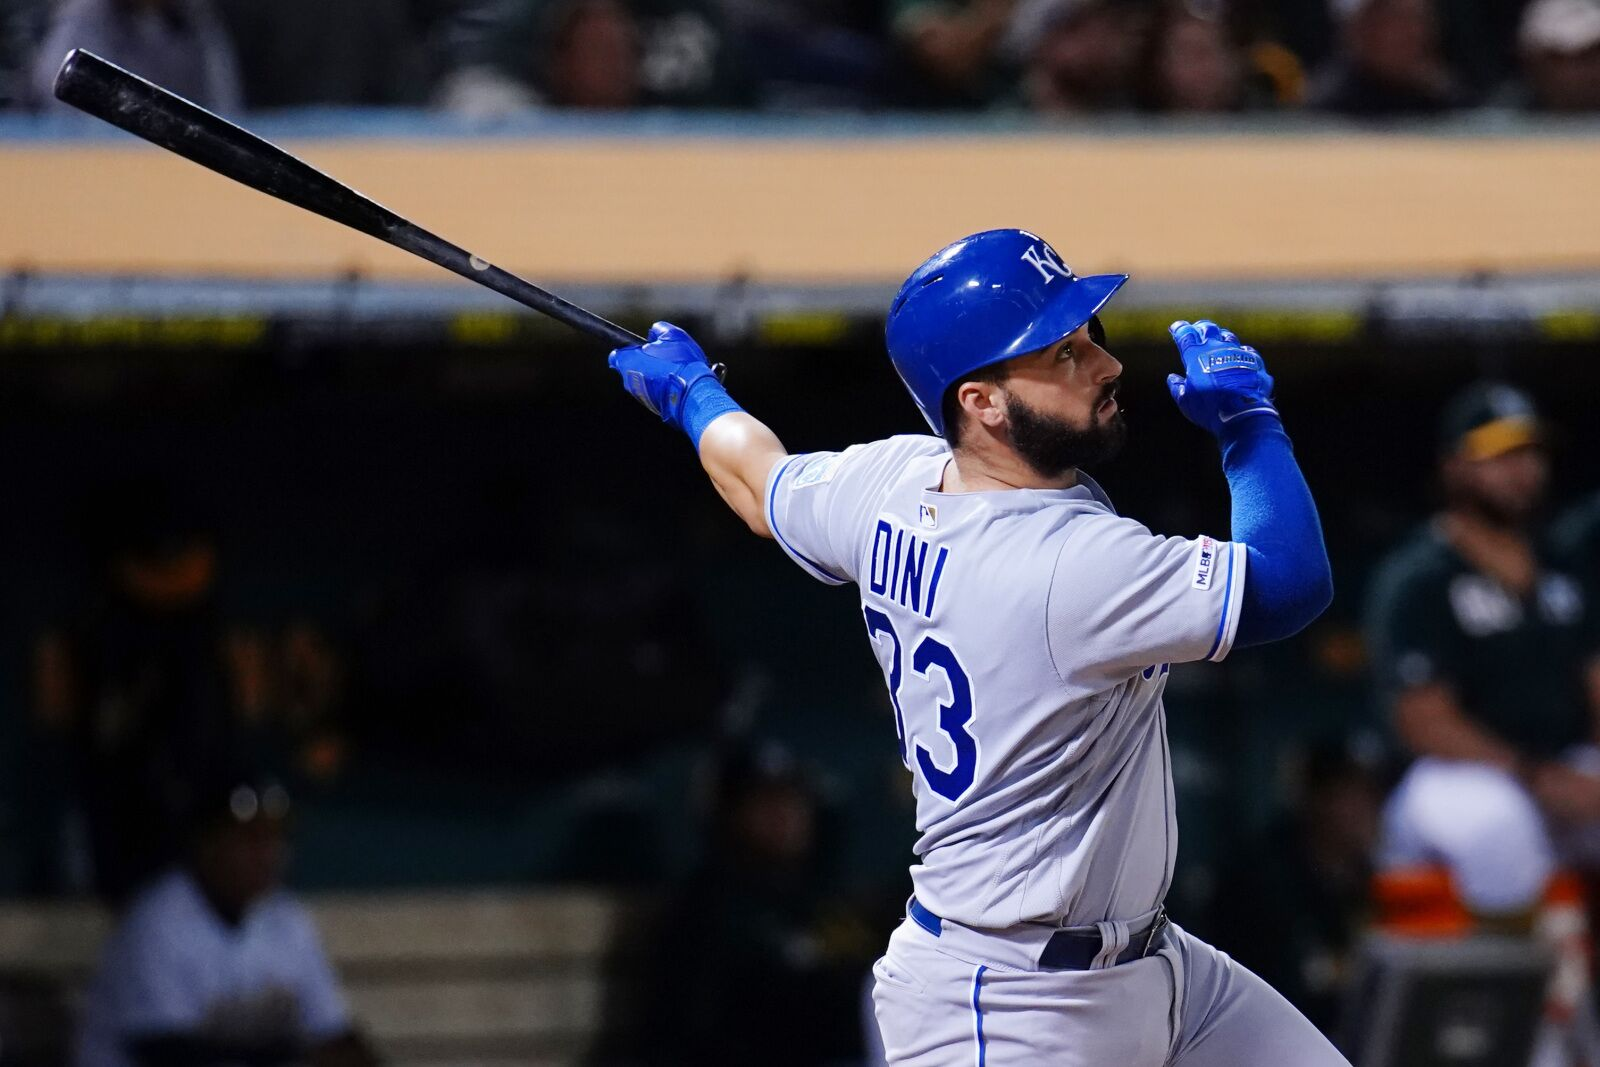 Kansas City Royals: Bats go cold in 2-1 loss against A's